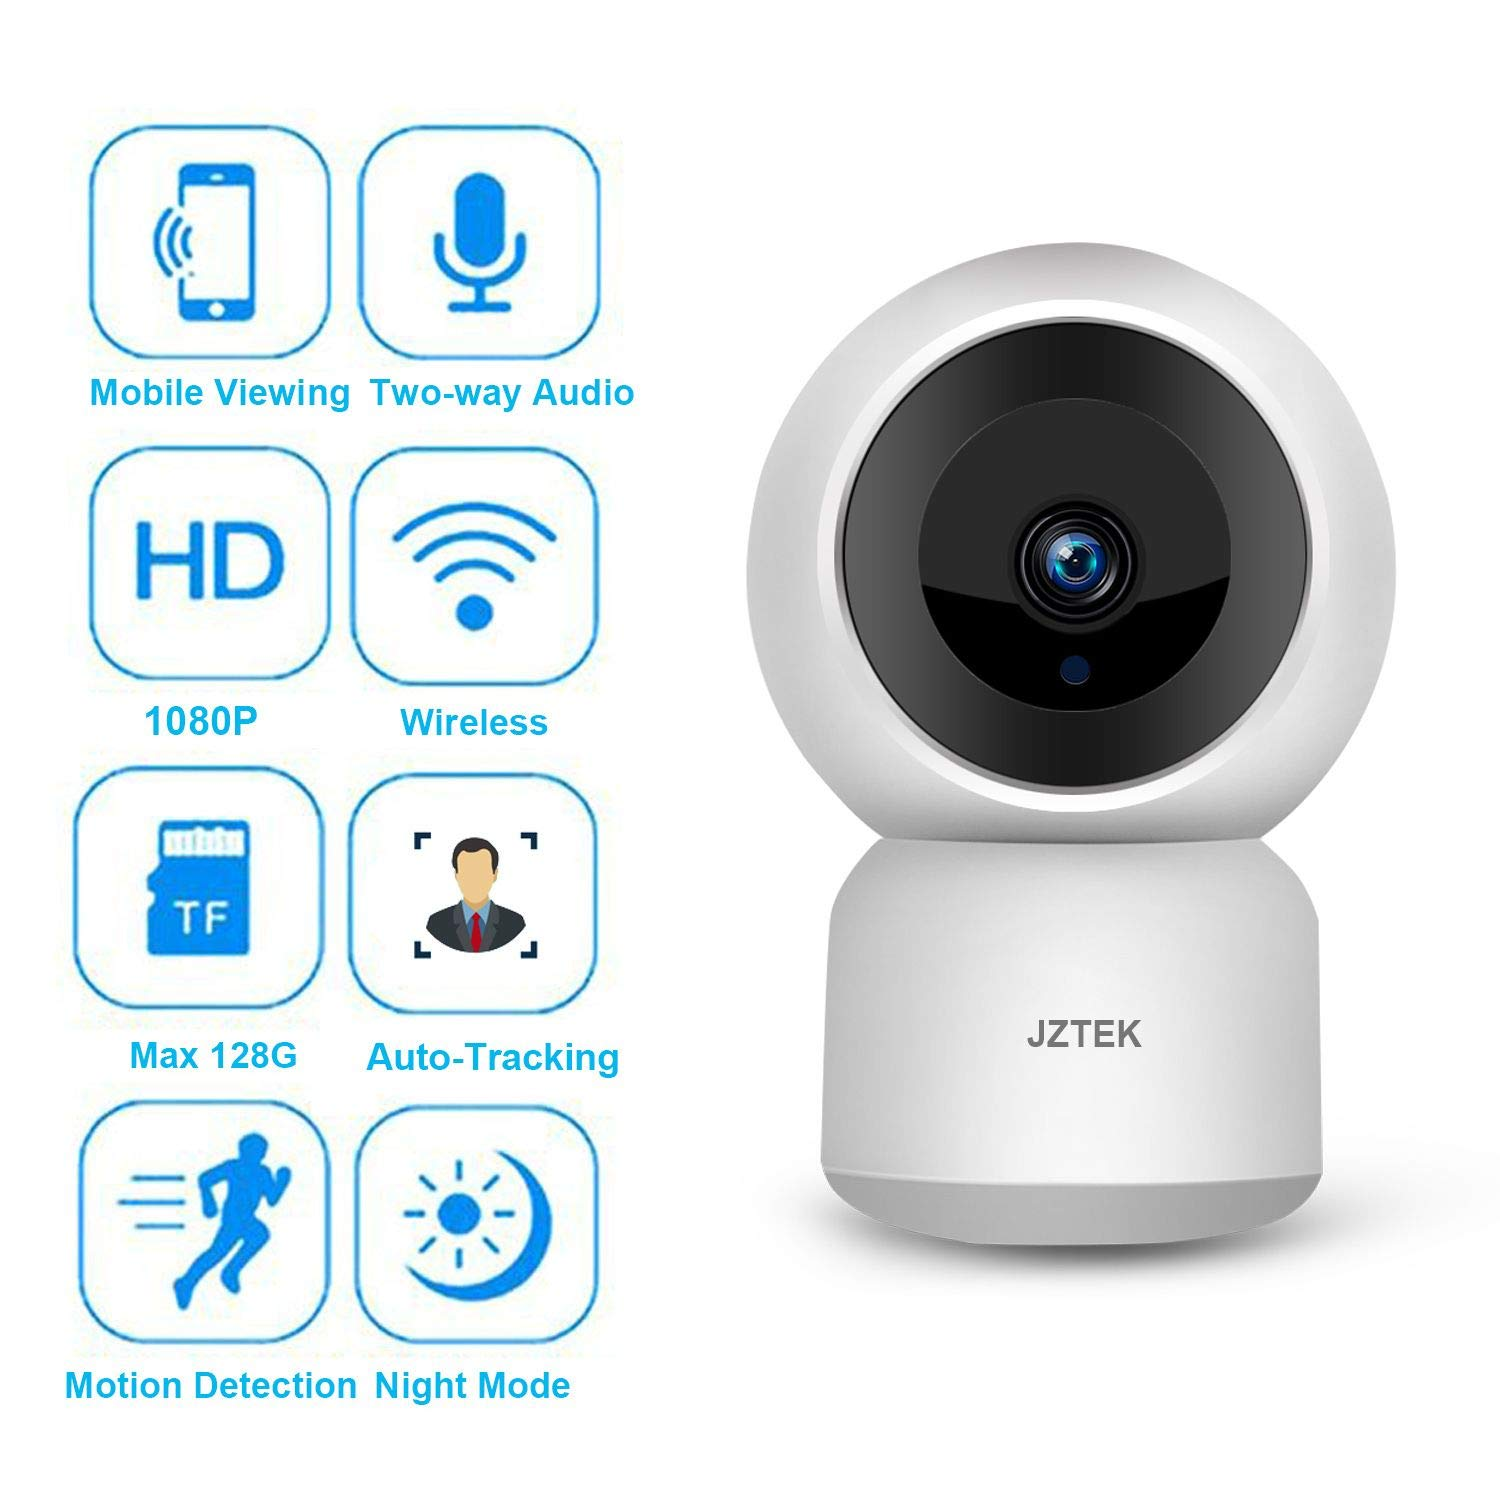 WiFi Dog IP Camera 1080P, JZTEK Smart Wireless Cam Pan/Tilt/Zoom with Cloud Service 3D Image Touch Navigation Panoramic View Night Vision, Two-Way Audio, Motion Detection for Elder,Baby,Pet by JZTEK (Image #2)